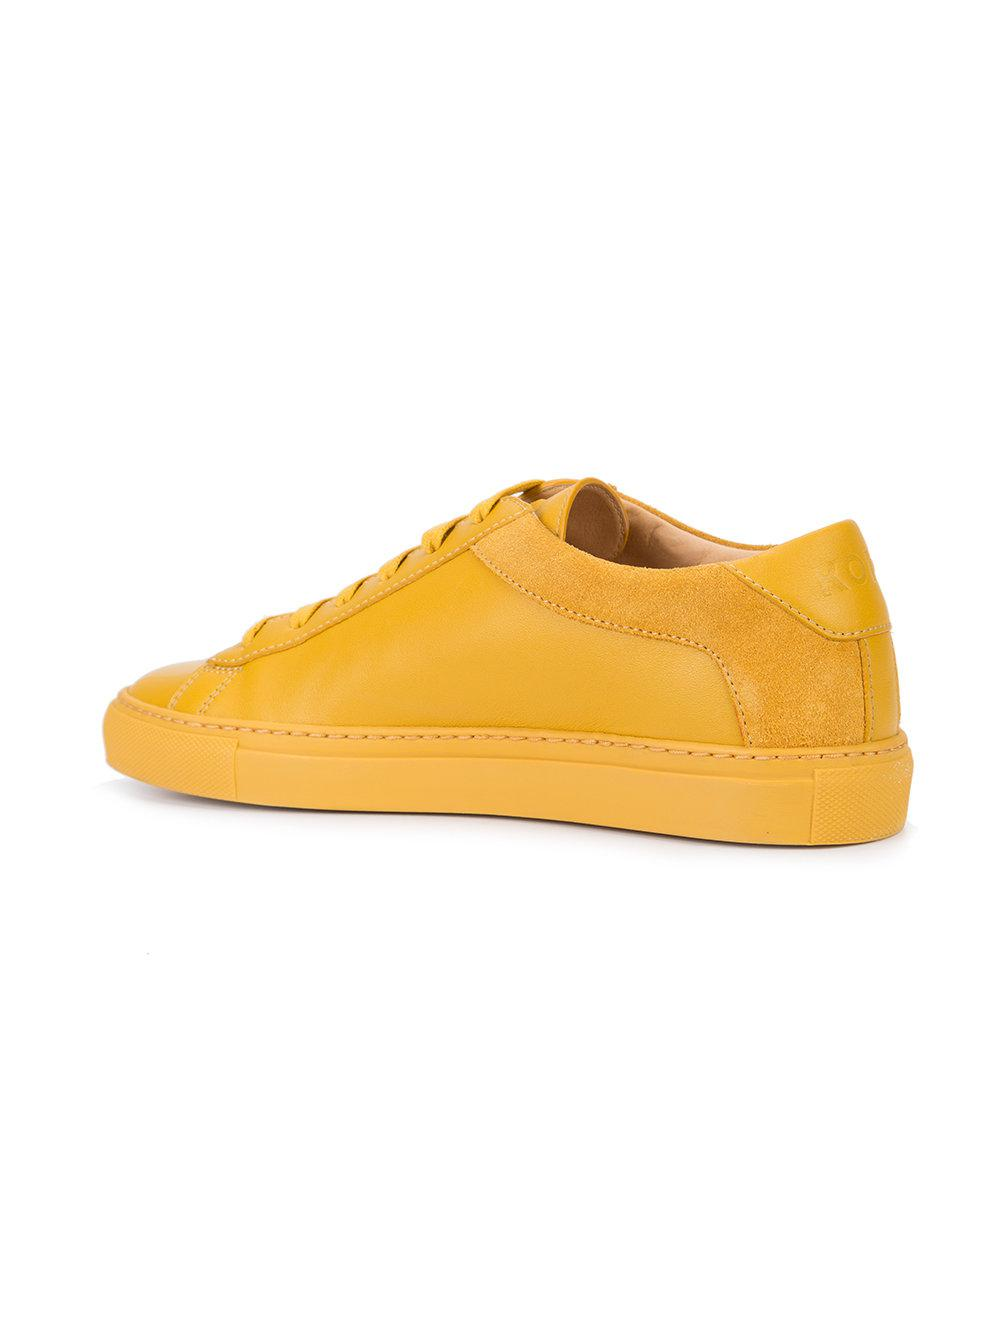 Capri Zafferano sneakers - Yellow & Orange KOIO tu5JfuJ